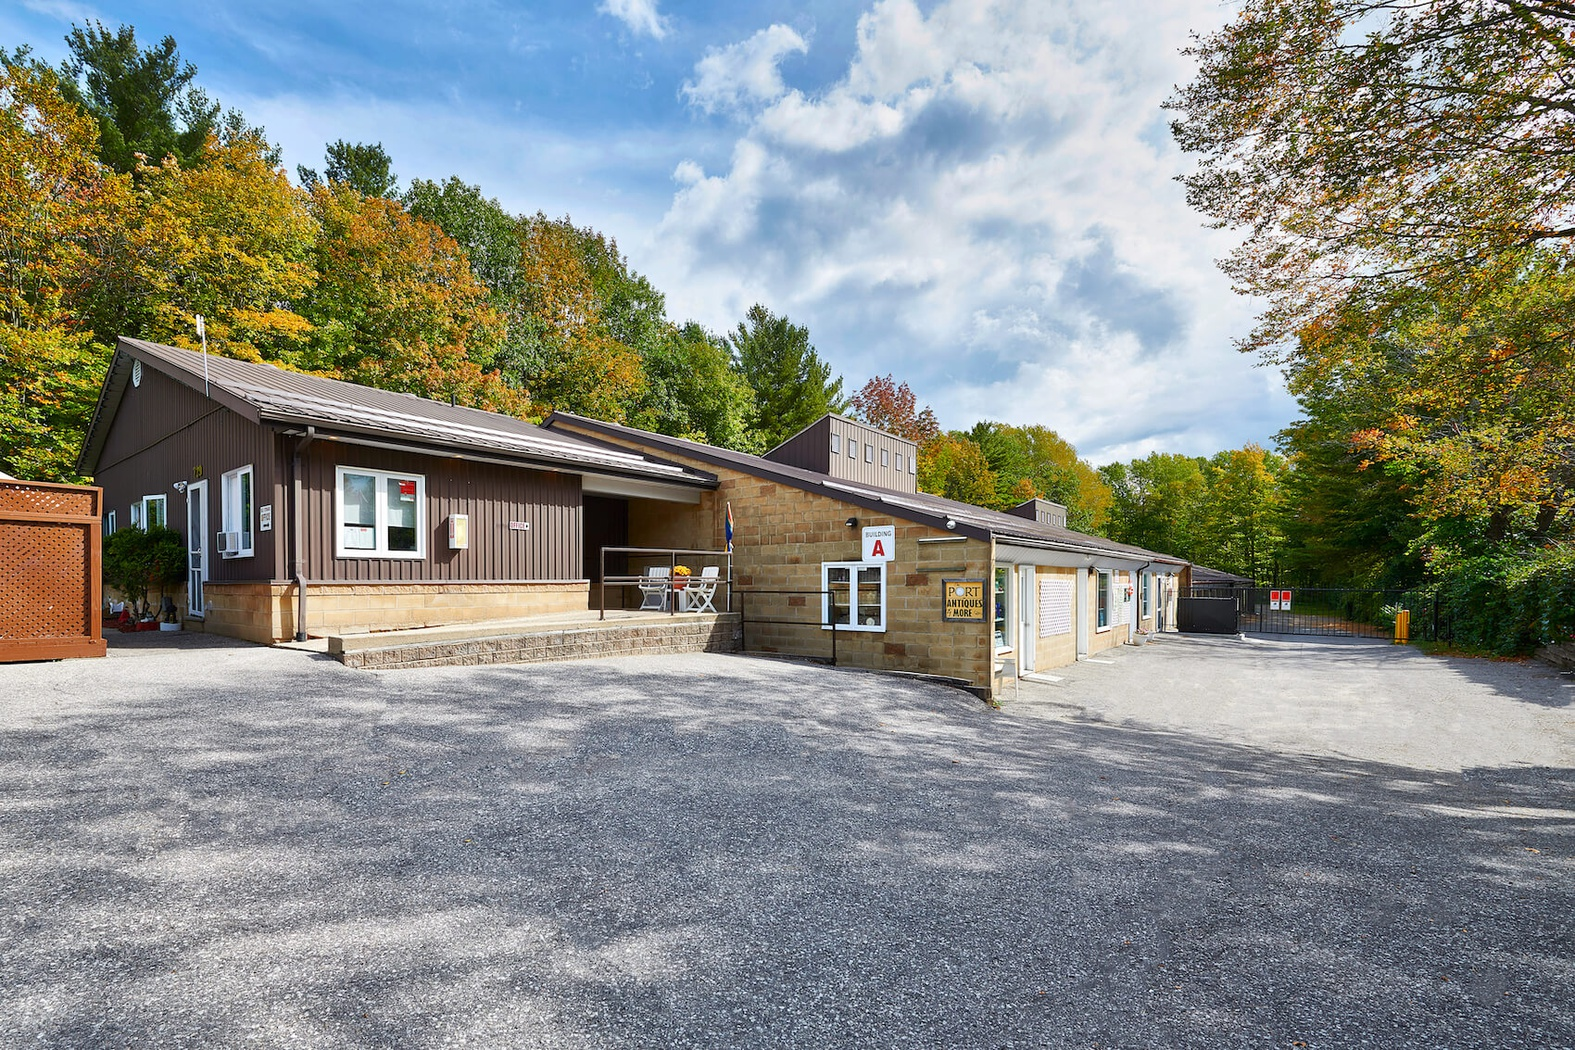 Rent Midland storage units at 729 Balm Beach Road East. We offer a wide-range of affordable self storage units and your first 4 weeks are free!